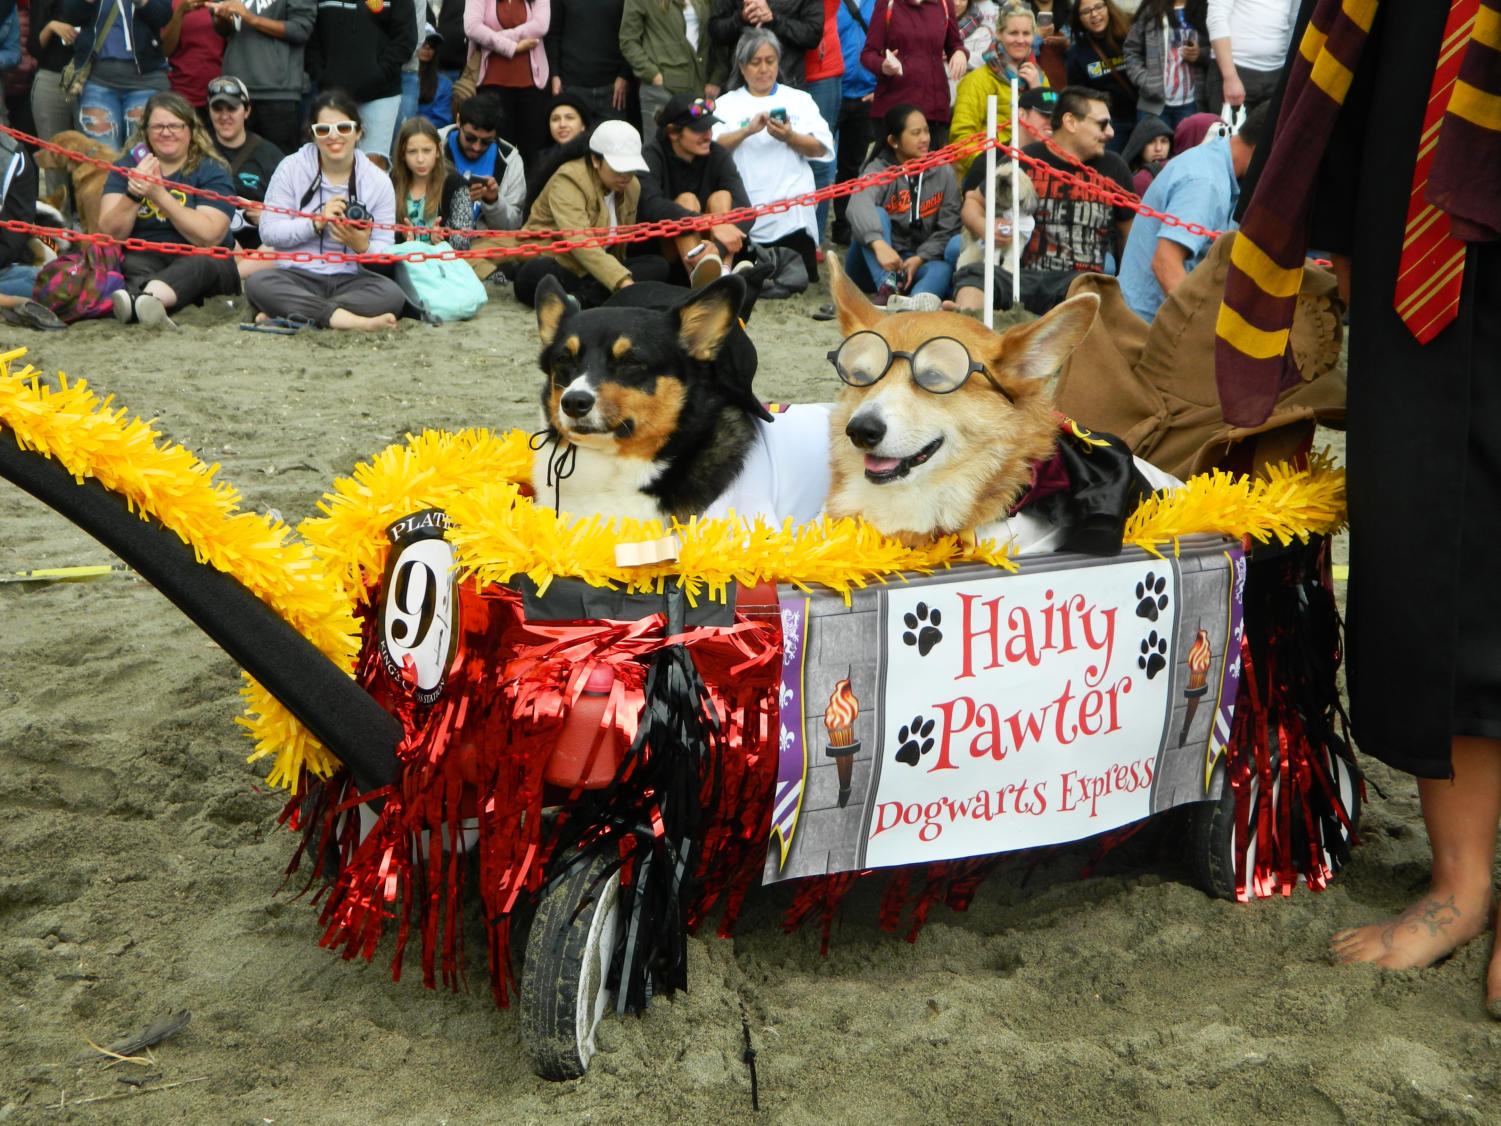 Two+corgis+dressed+up+as+characters+from+Harry+Potter%2C+or+%22Hairy+Pawter%22+await+judging+at+the+costume+contest.+The+duo+will+later+claim+the+second+place+title.